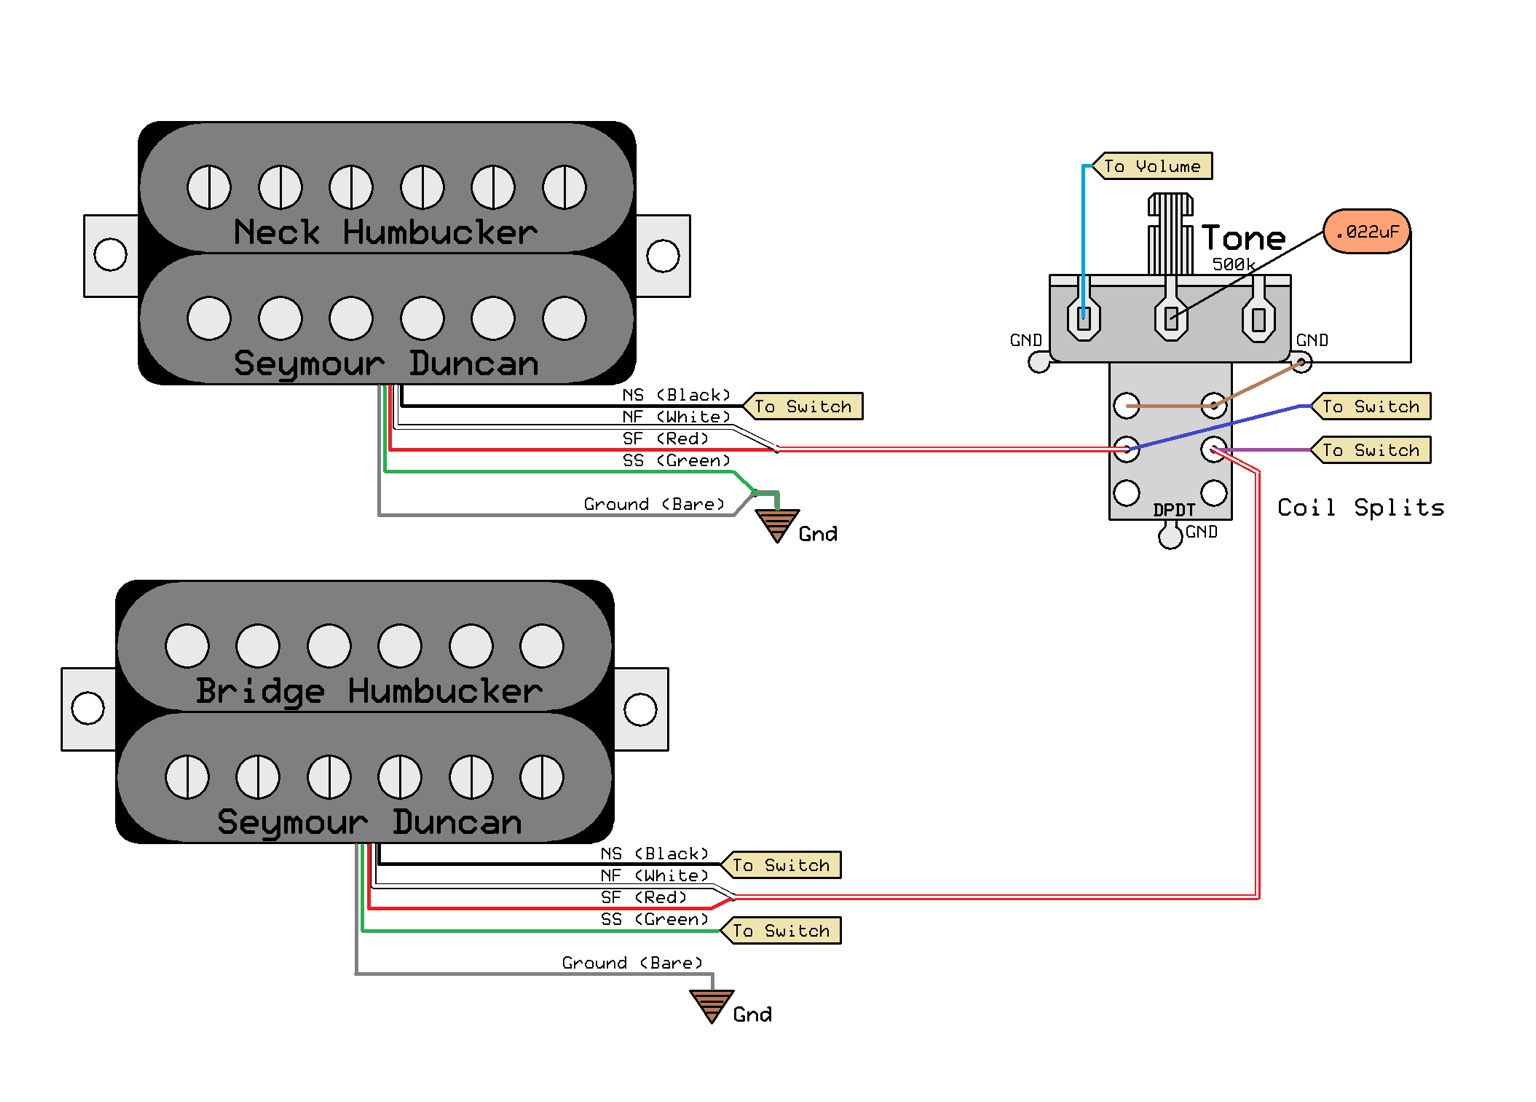 008df9f181c59f5981ef81e19f0fb818?resize\\\\\\\\\\\=665%2C477 pro dems wiring diagram series and parallel circuits diagrams  at crackthecode.co